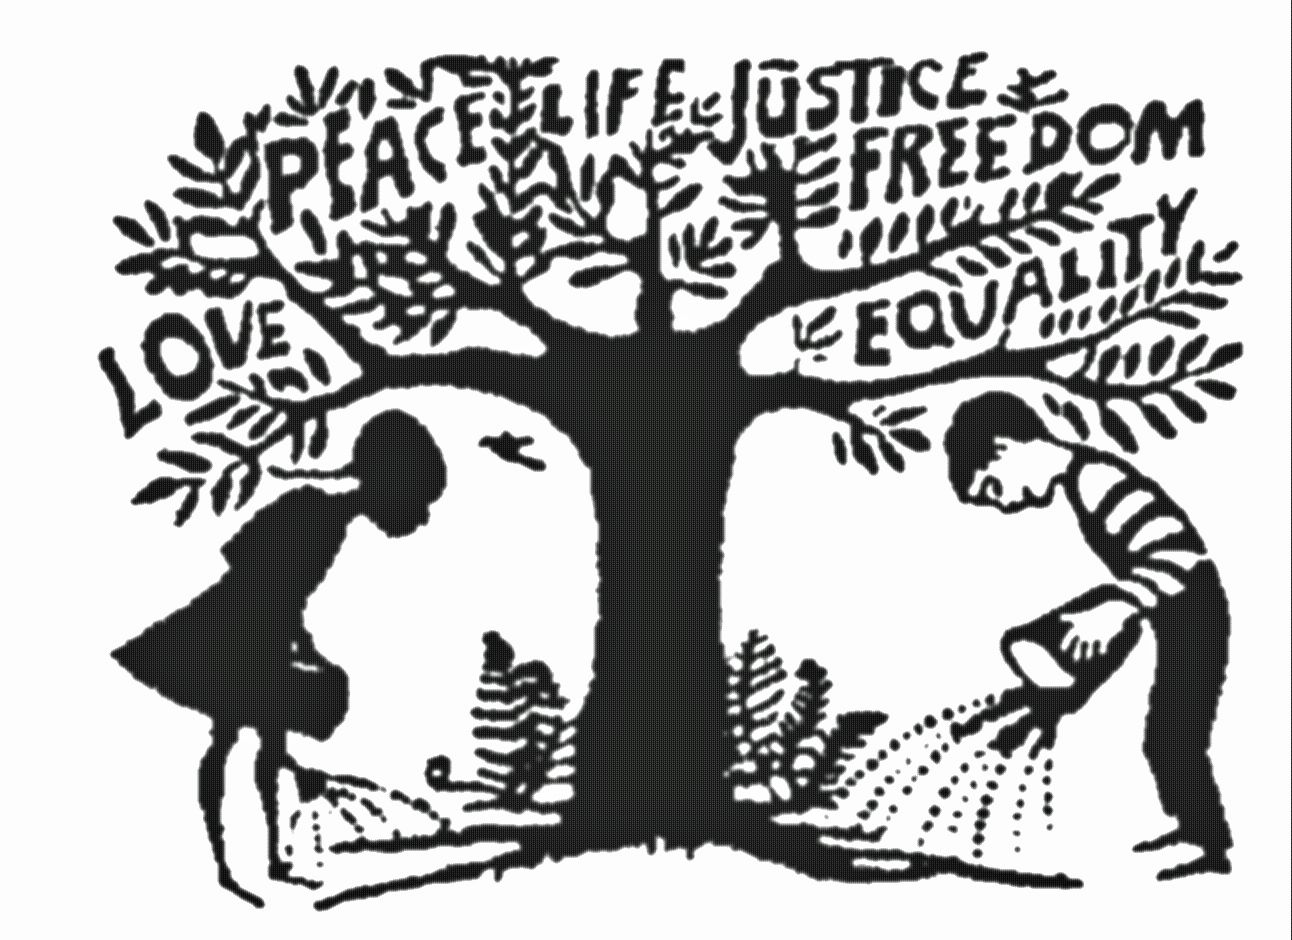 Take Care Of The Trees Activism Art Word Art Social Justice Definition